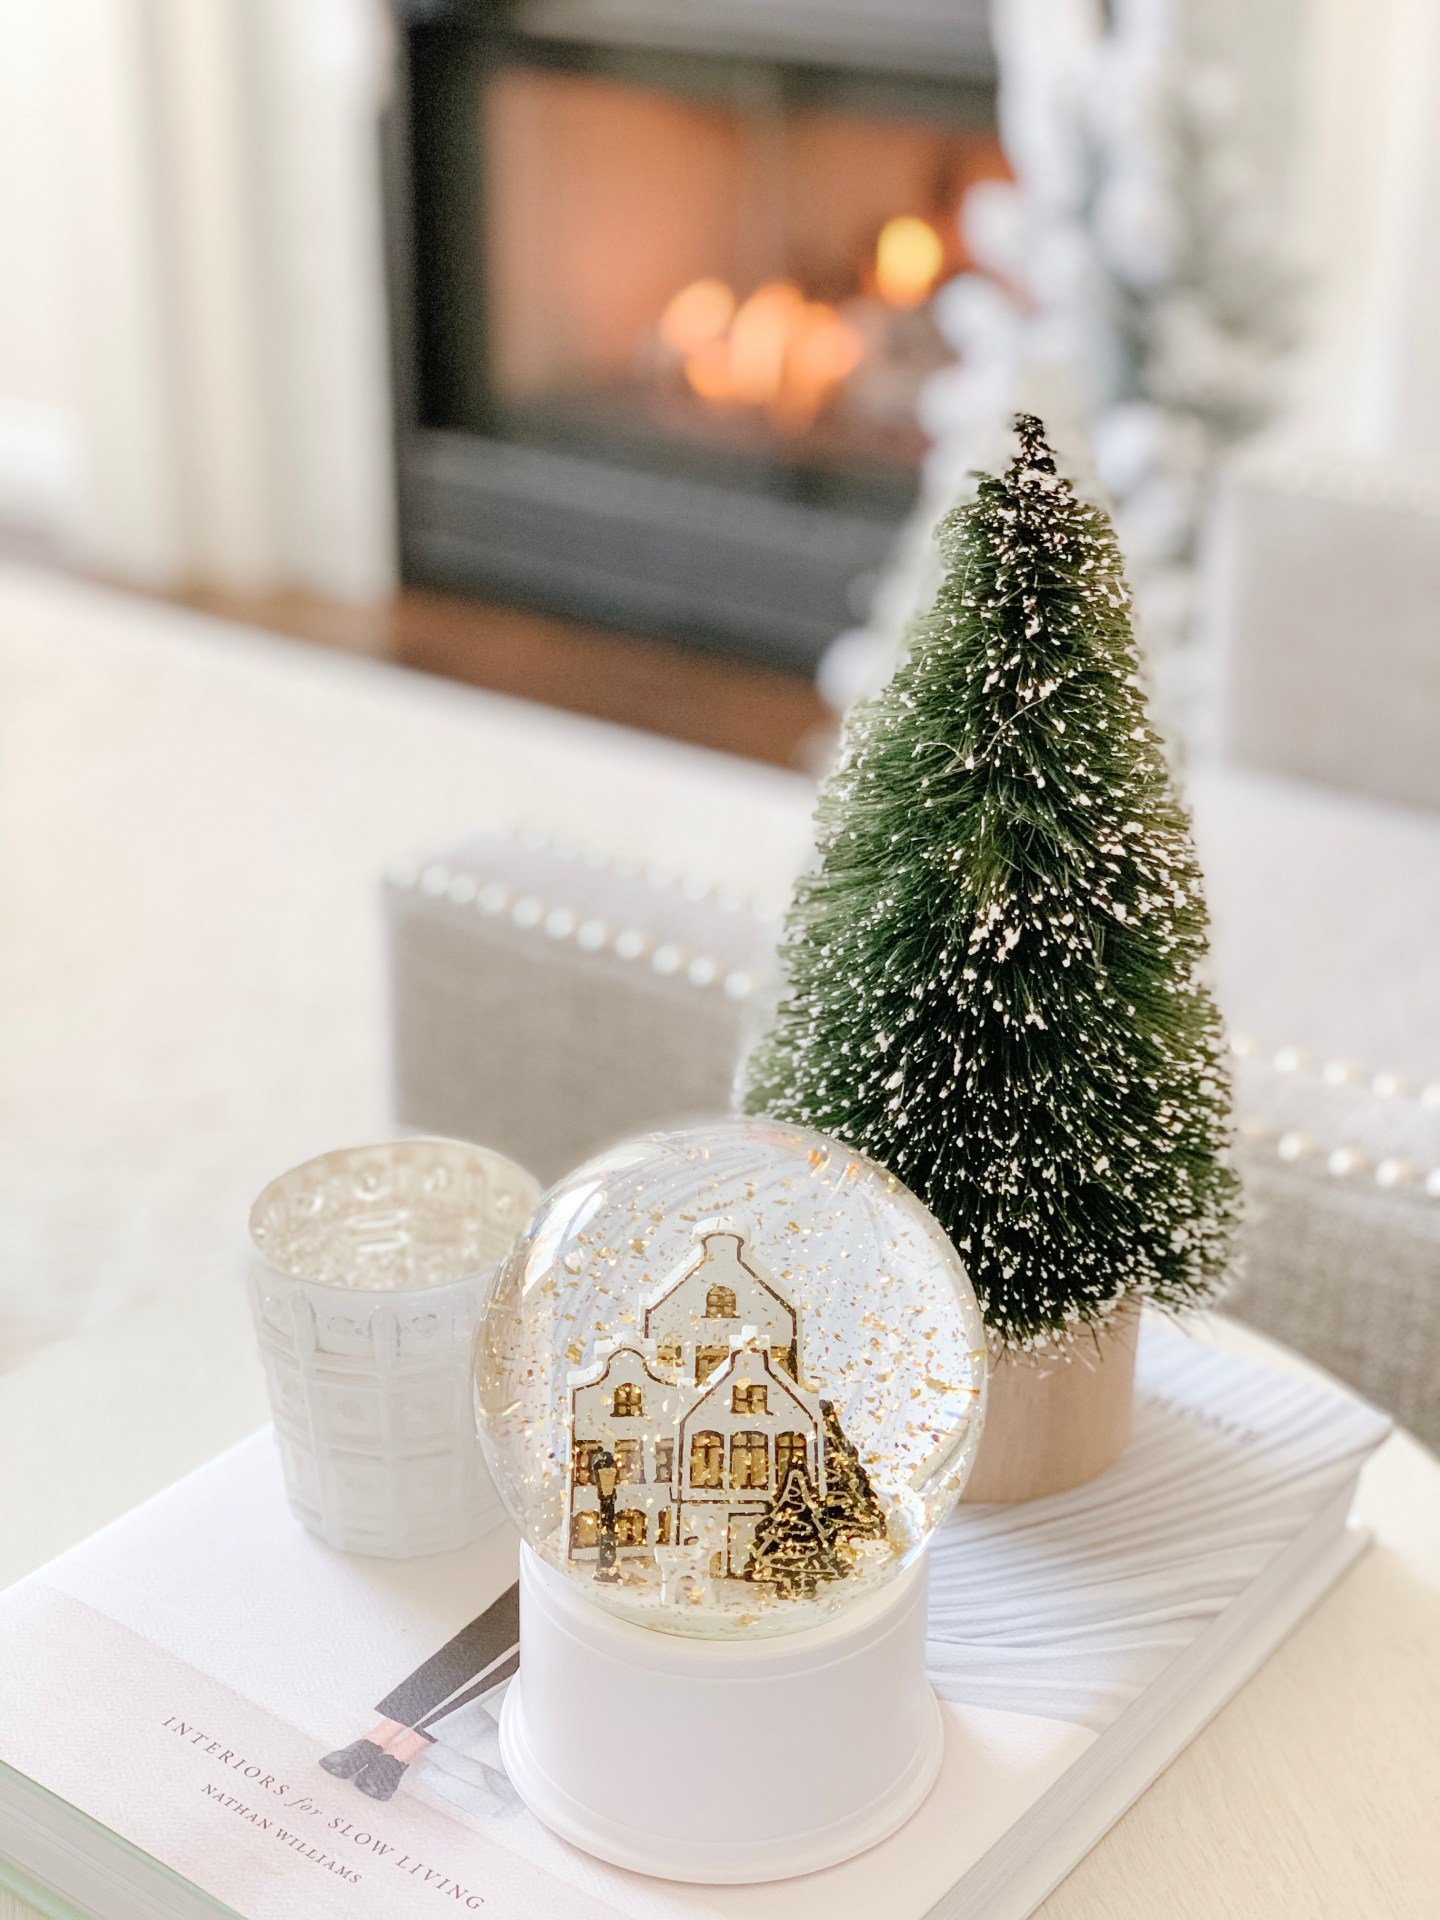 Black and gold Christmas snowglobe